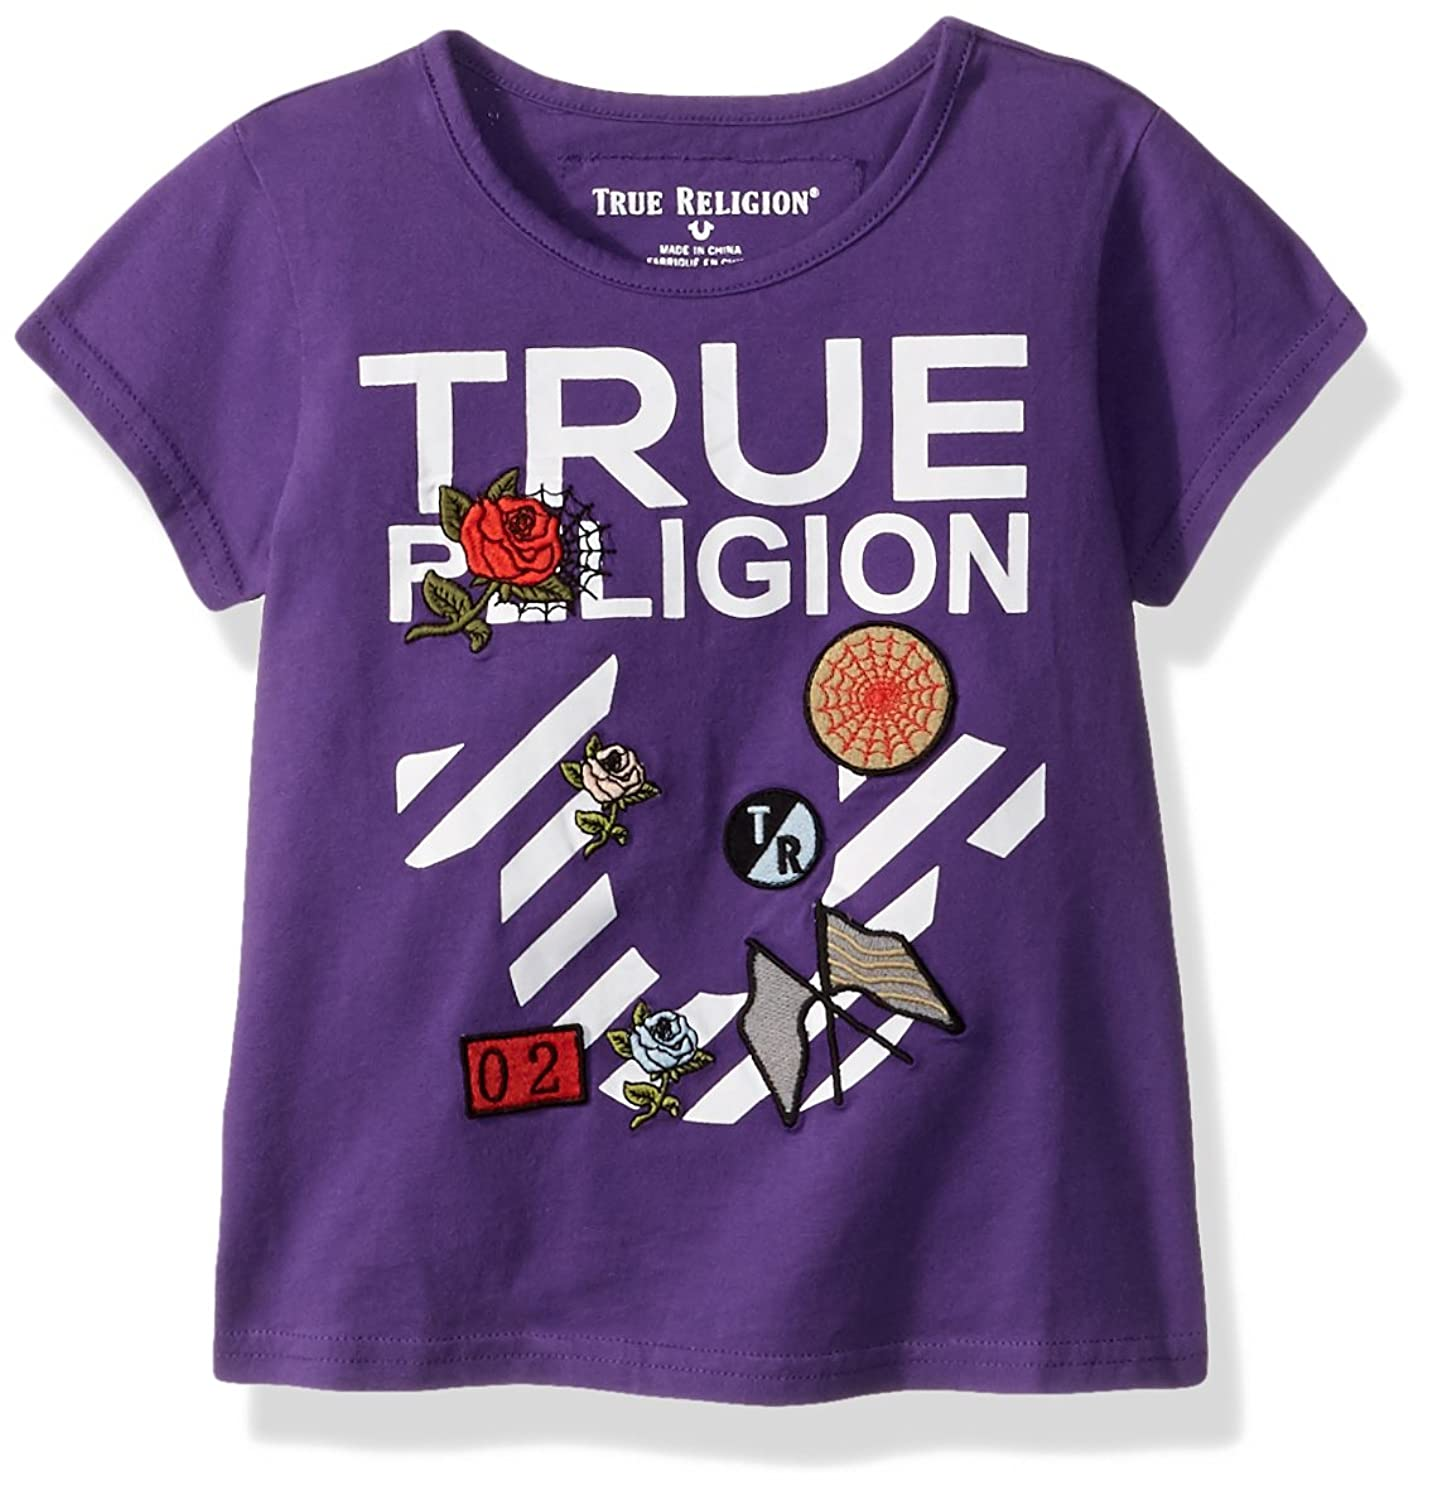 37f98a6e7 True Religion Kids   Size Guide Instill a sense of style for your little  one early on with this super-cool tee. Soft cotton fabrication.